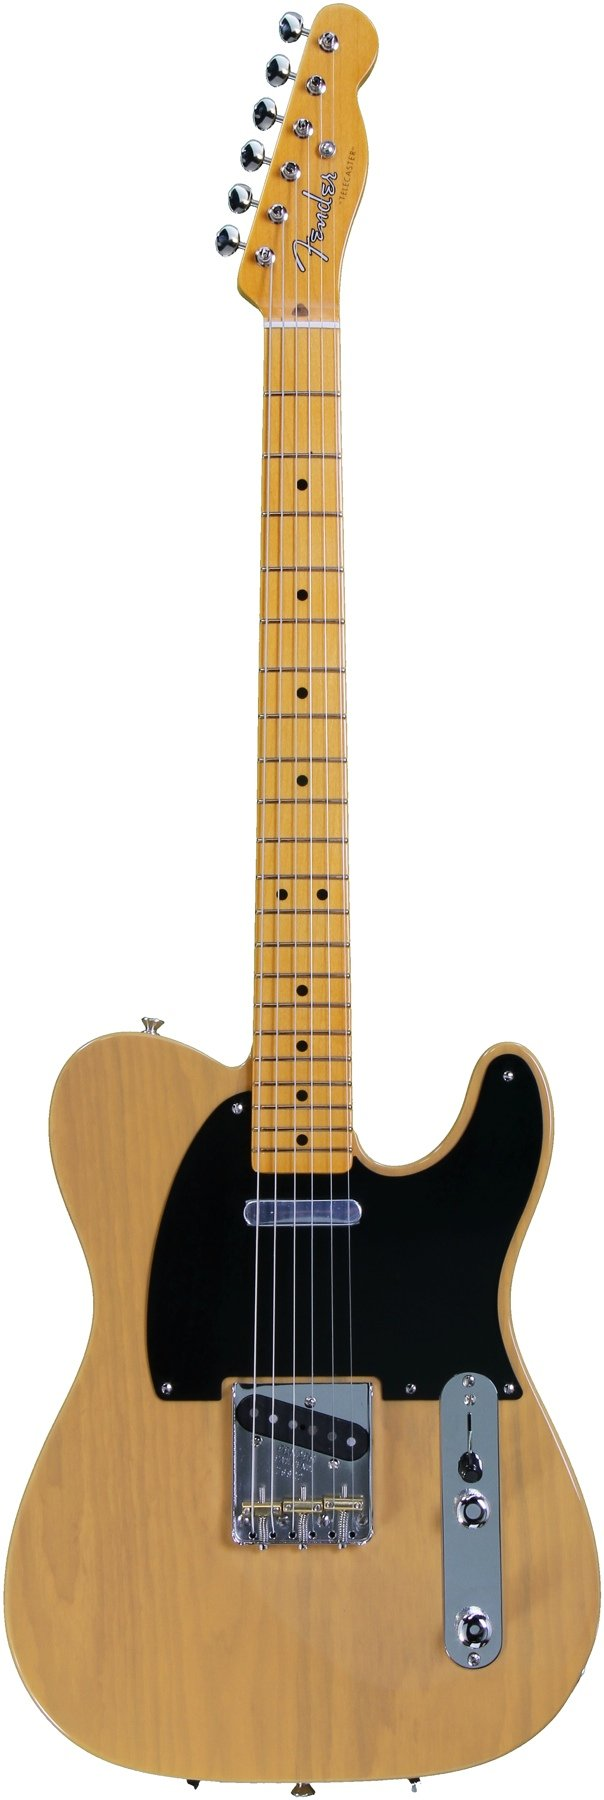 Fender American Vintage 52 Telecaster Butterscotch Sweetwater Reissue Wiring Diagram Image 1